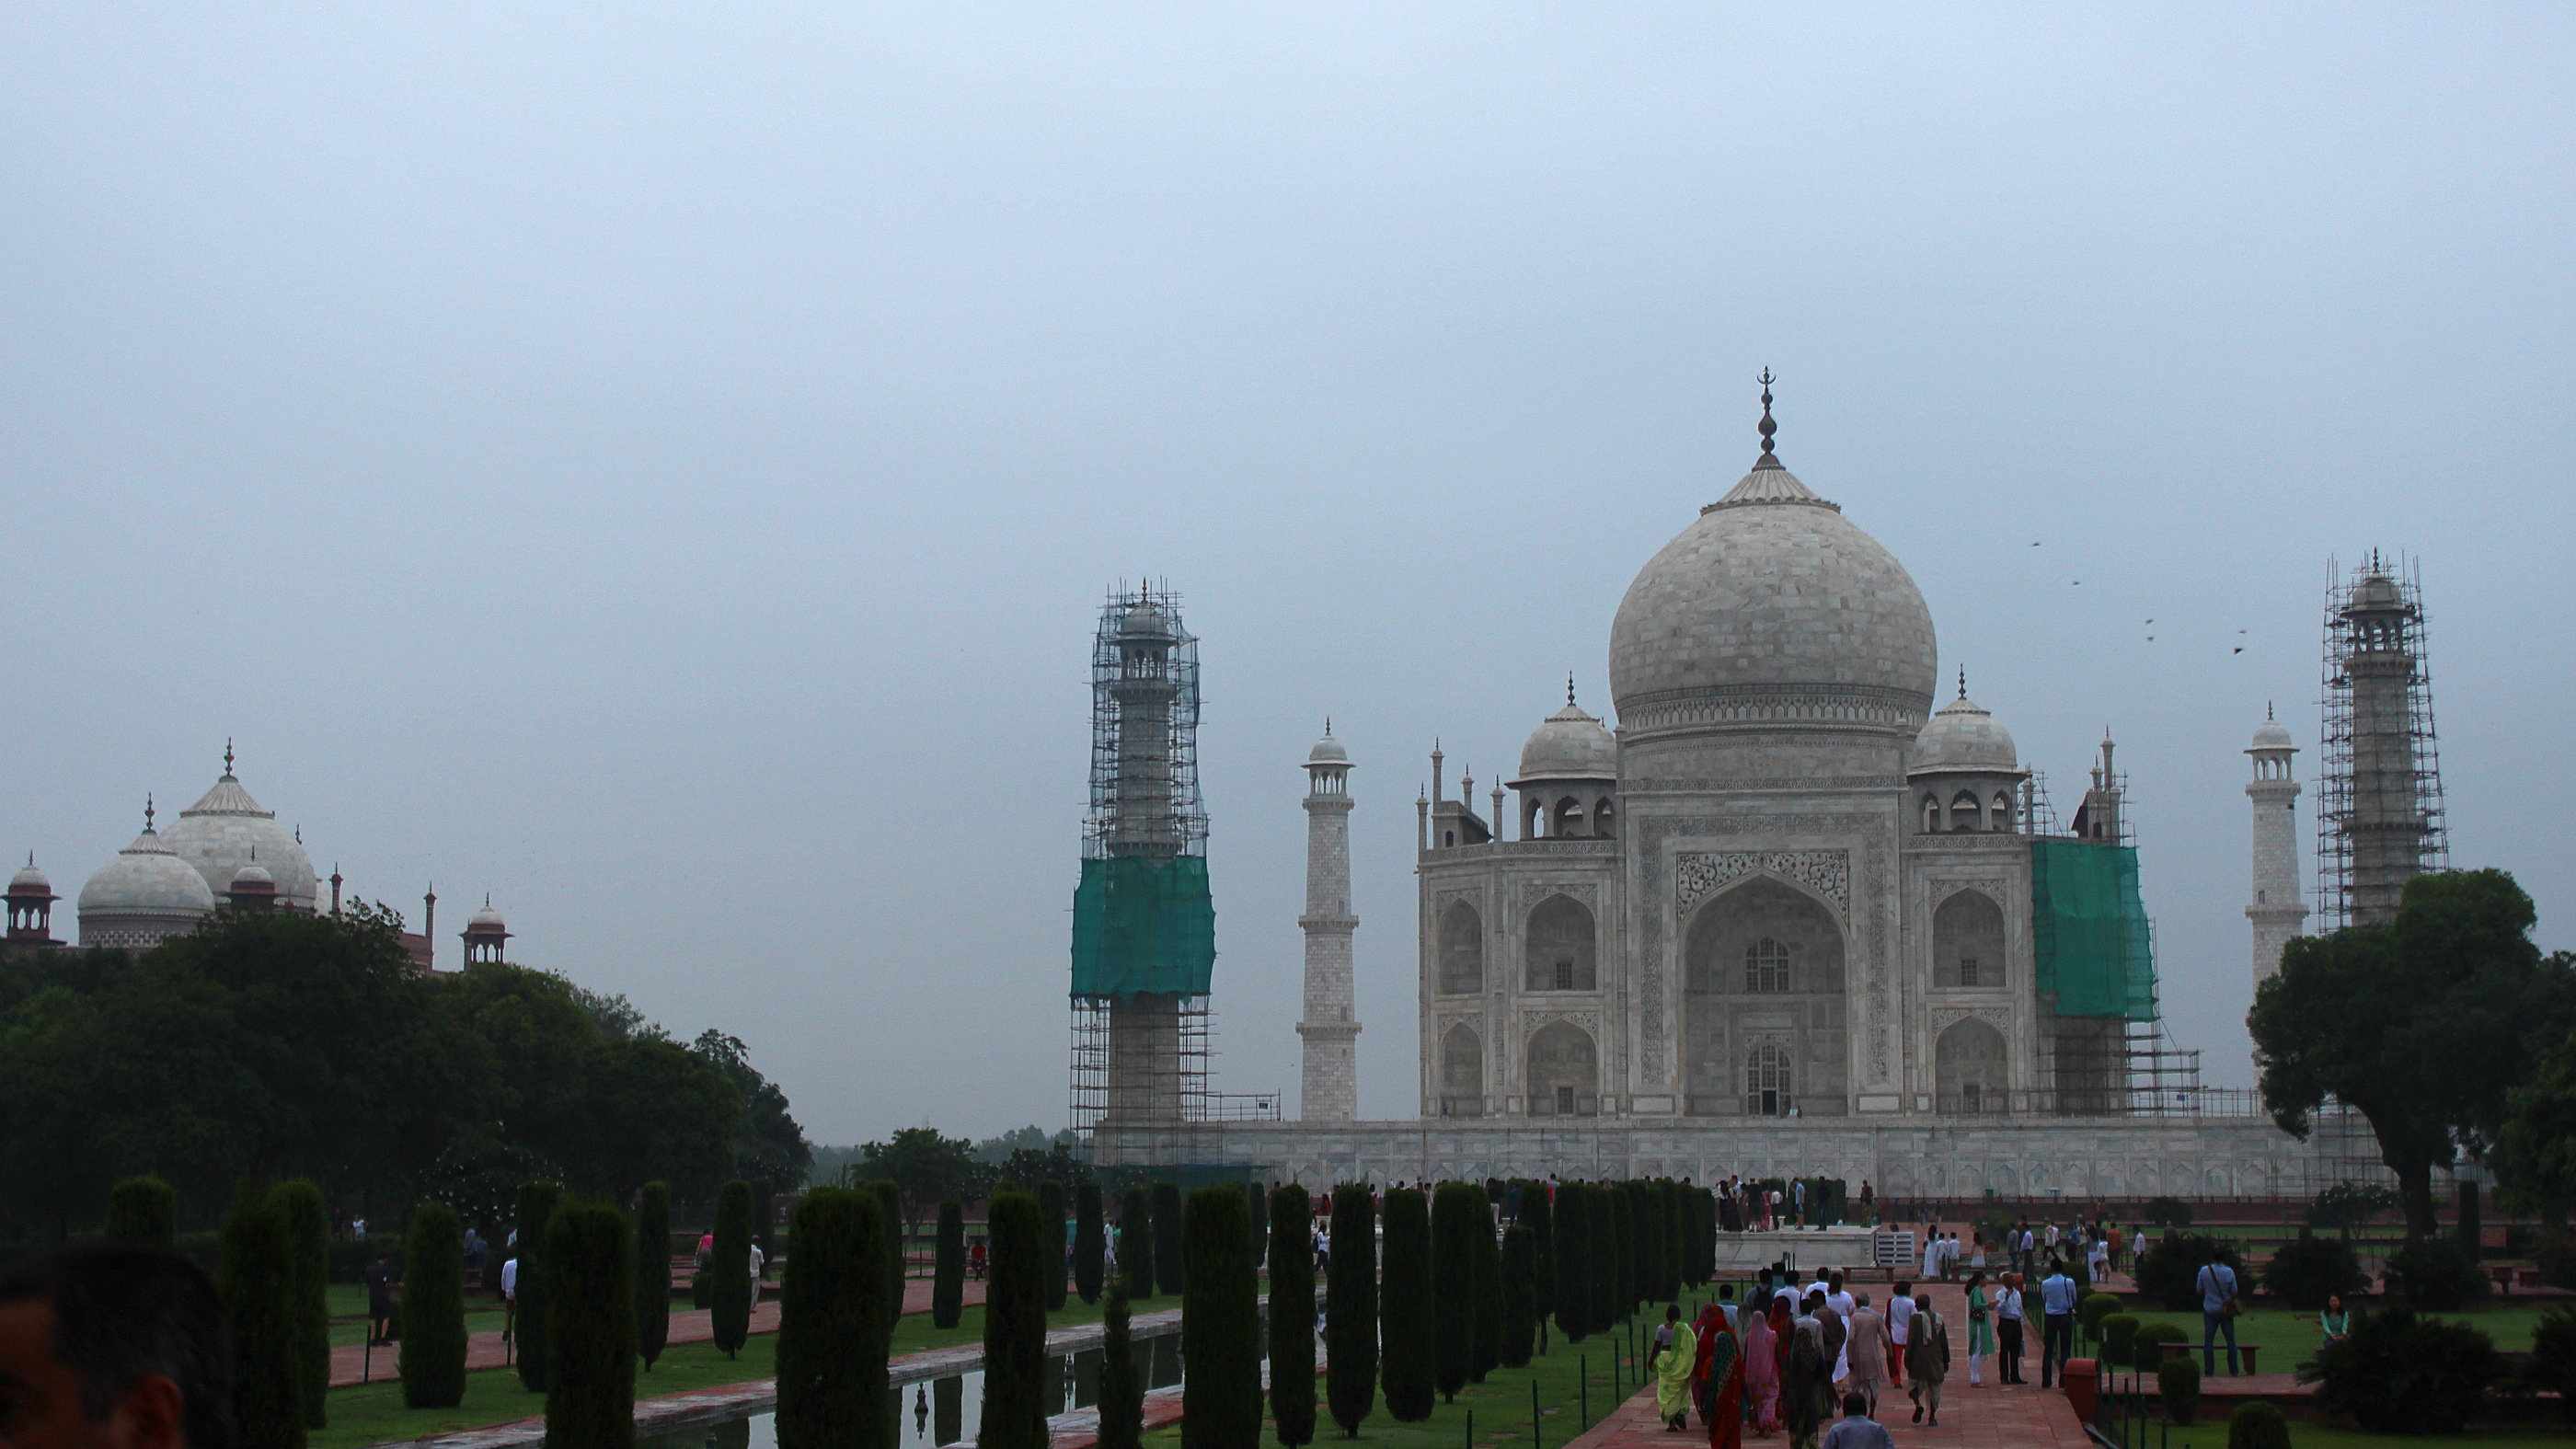 Alternative pictures of Taj Mahal: Here's the mausoleum on a cloudy morning with the front towers under renovation.